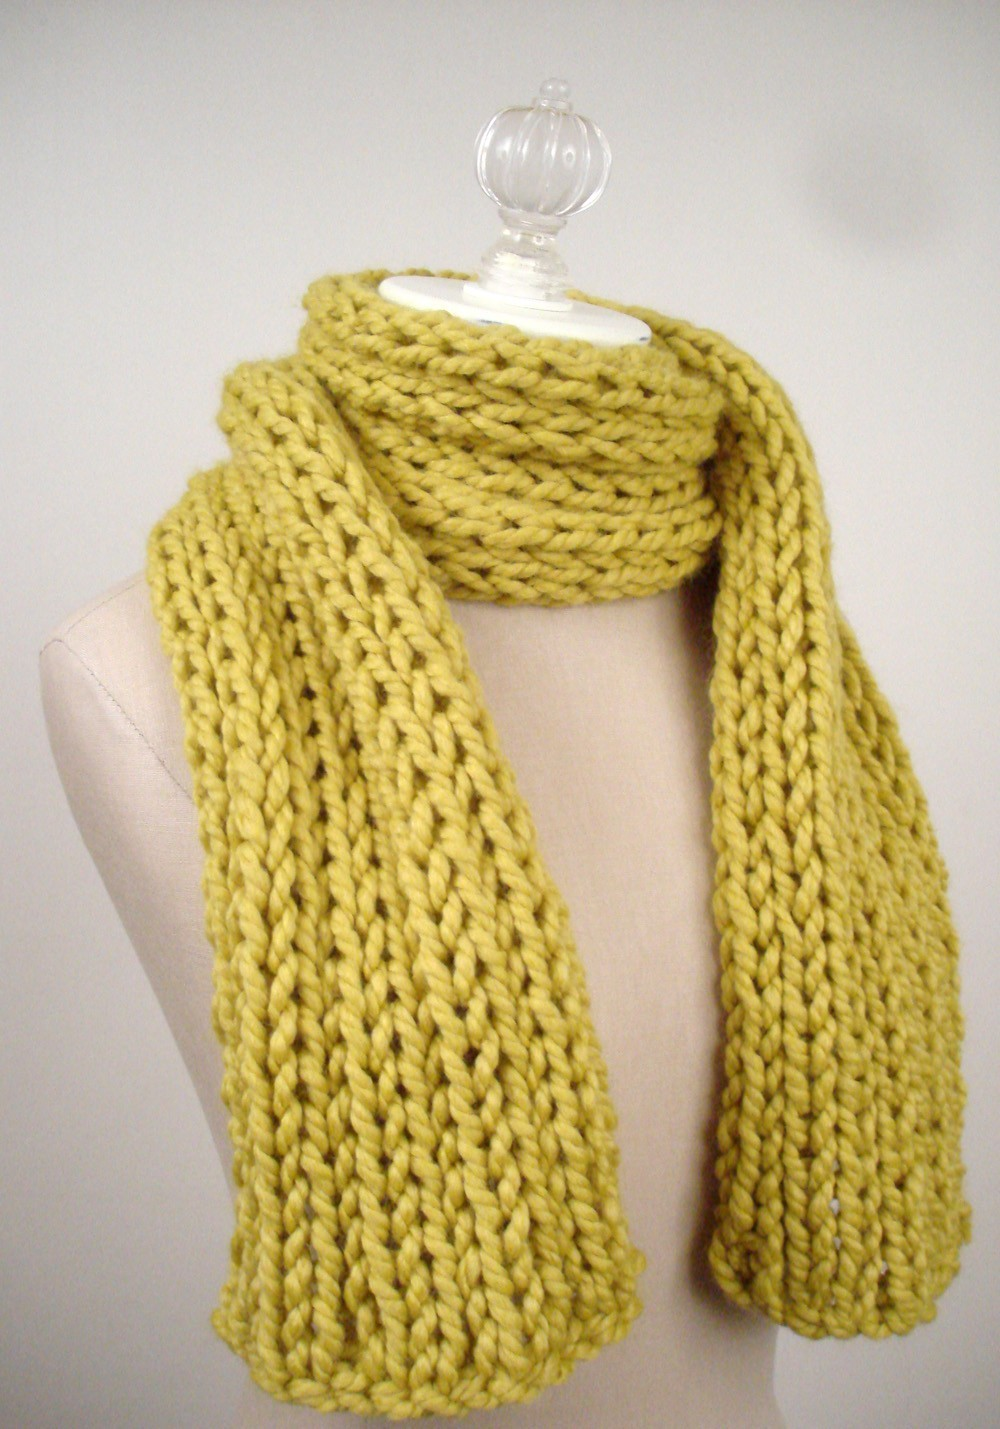 Hat Scarf Knitting Patterns Free : Scarf Knitting Patterns A Knitting Blog